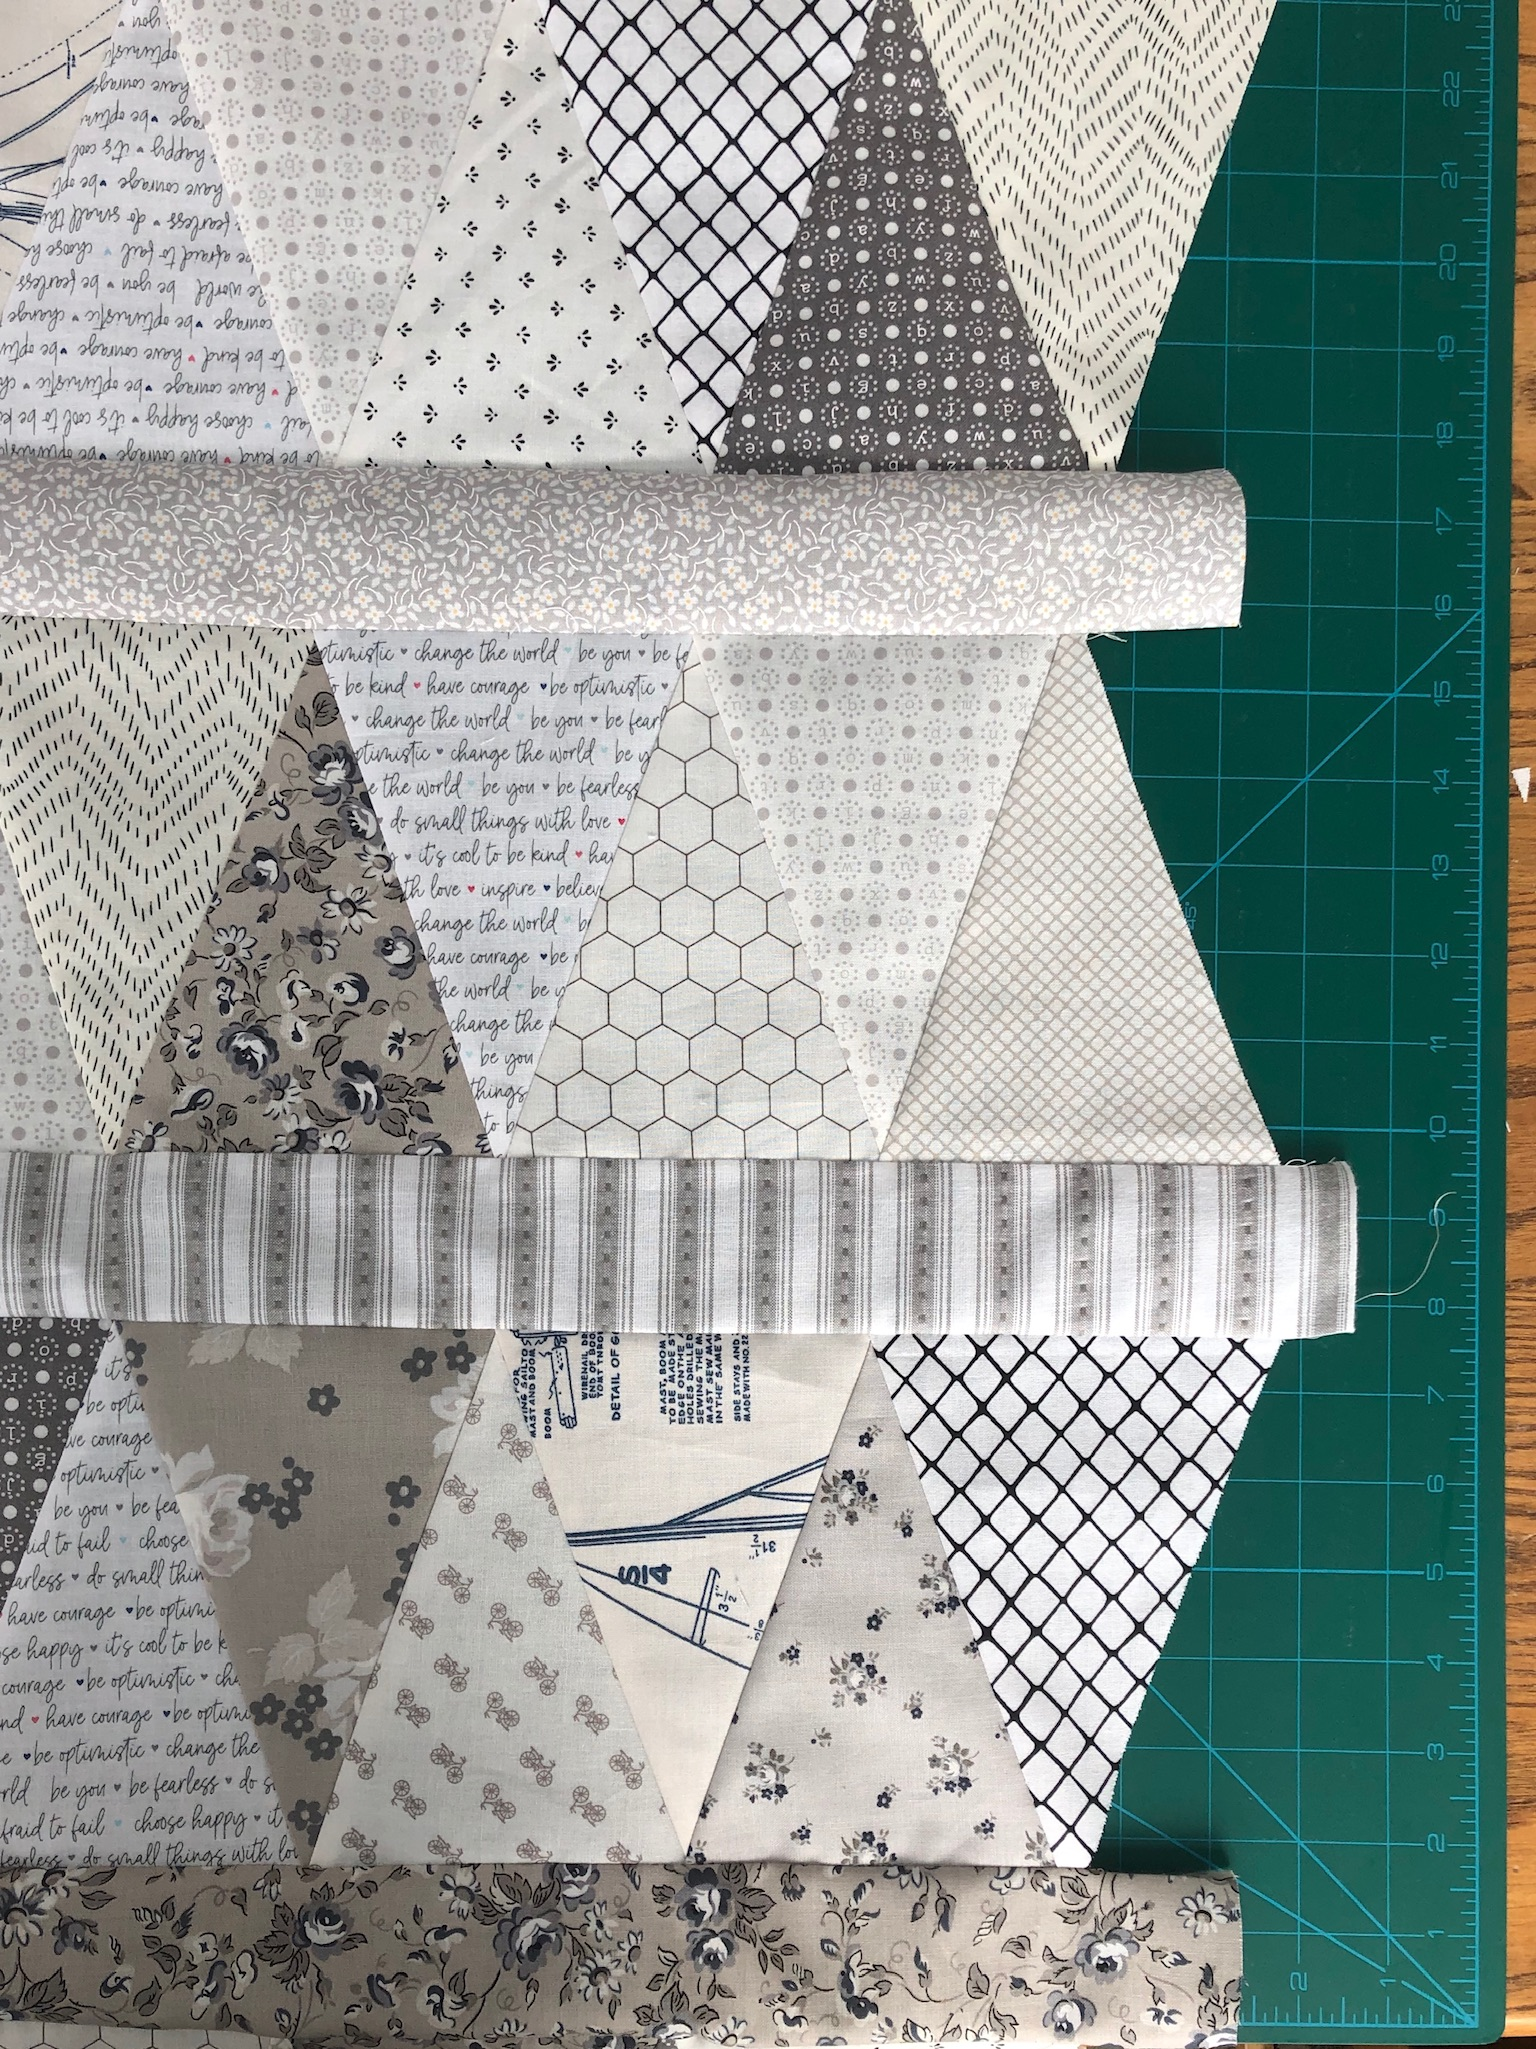 low volume fabric equilateral triangles sewn in rows with sewn sashing between each rectangular row